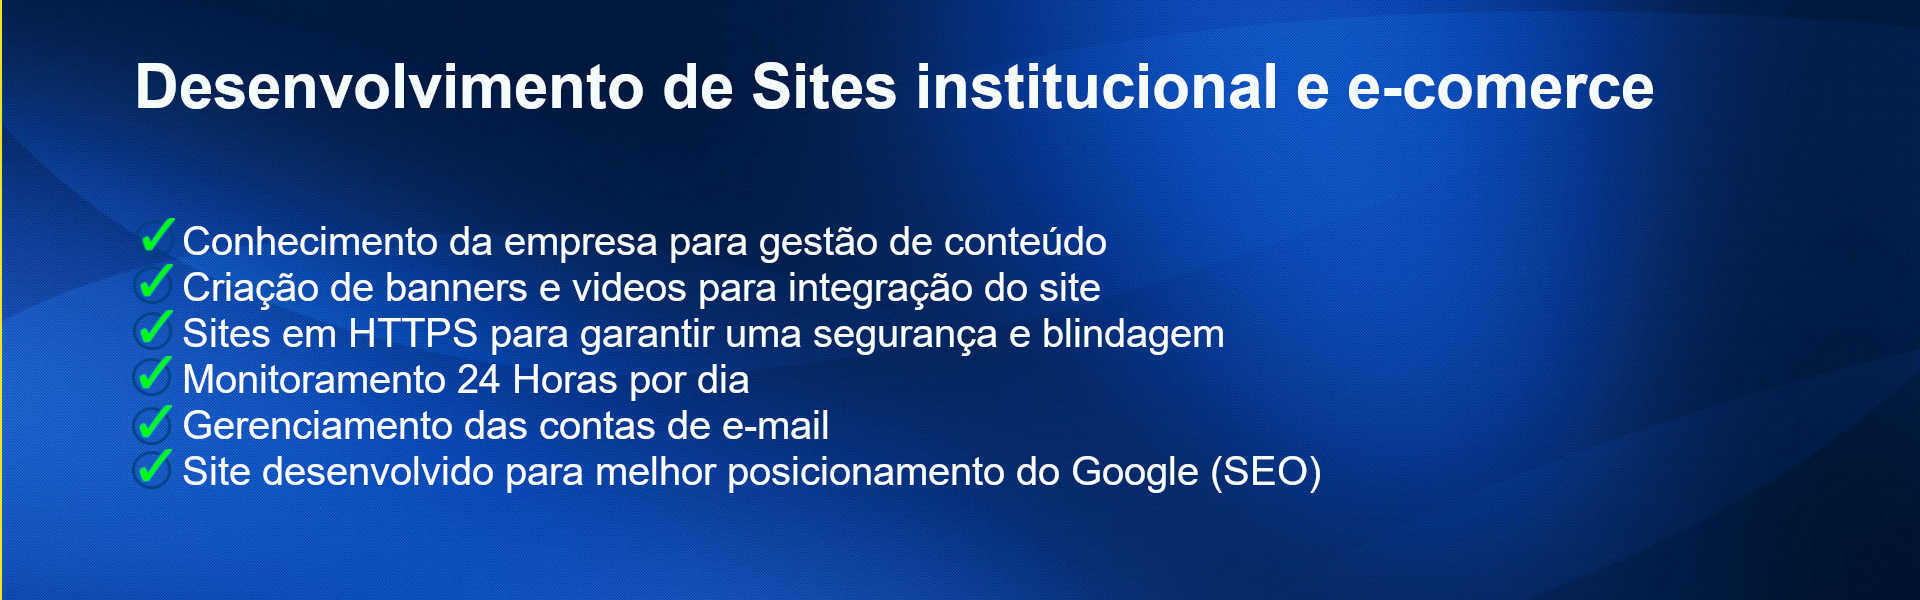 Desenvilvimento de Sites institucional e e-comerce